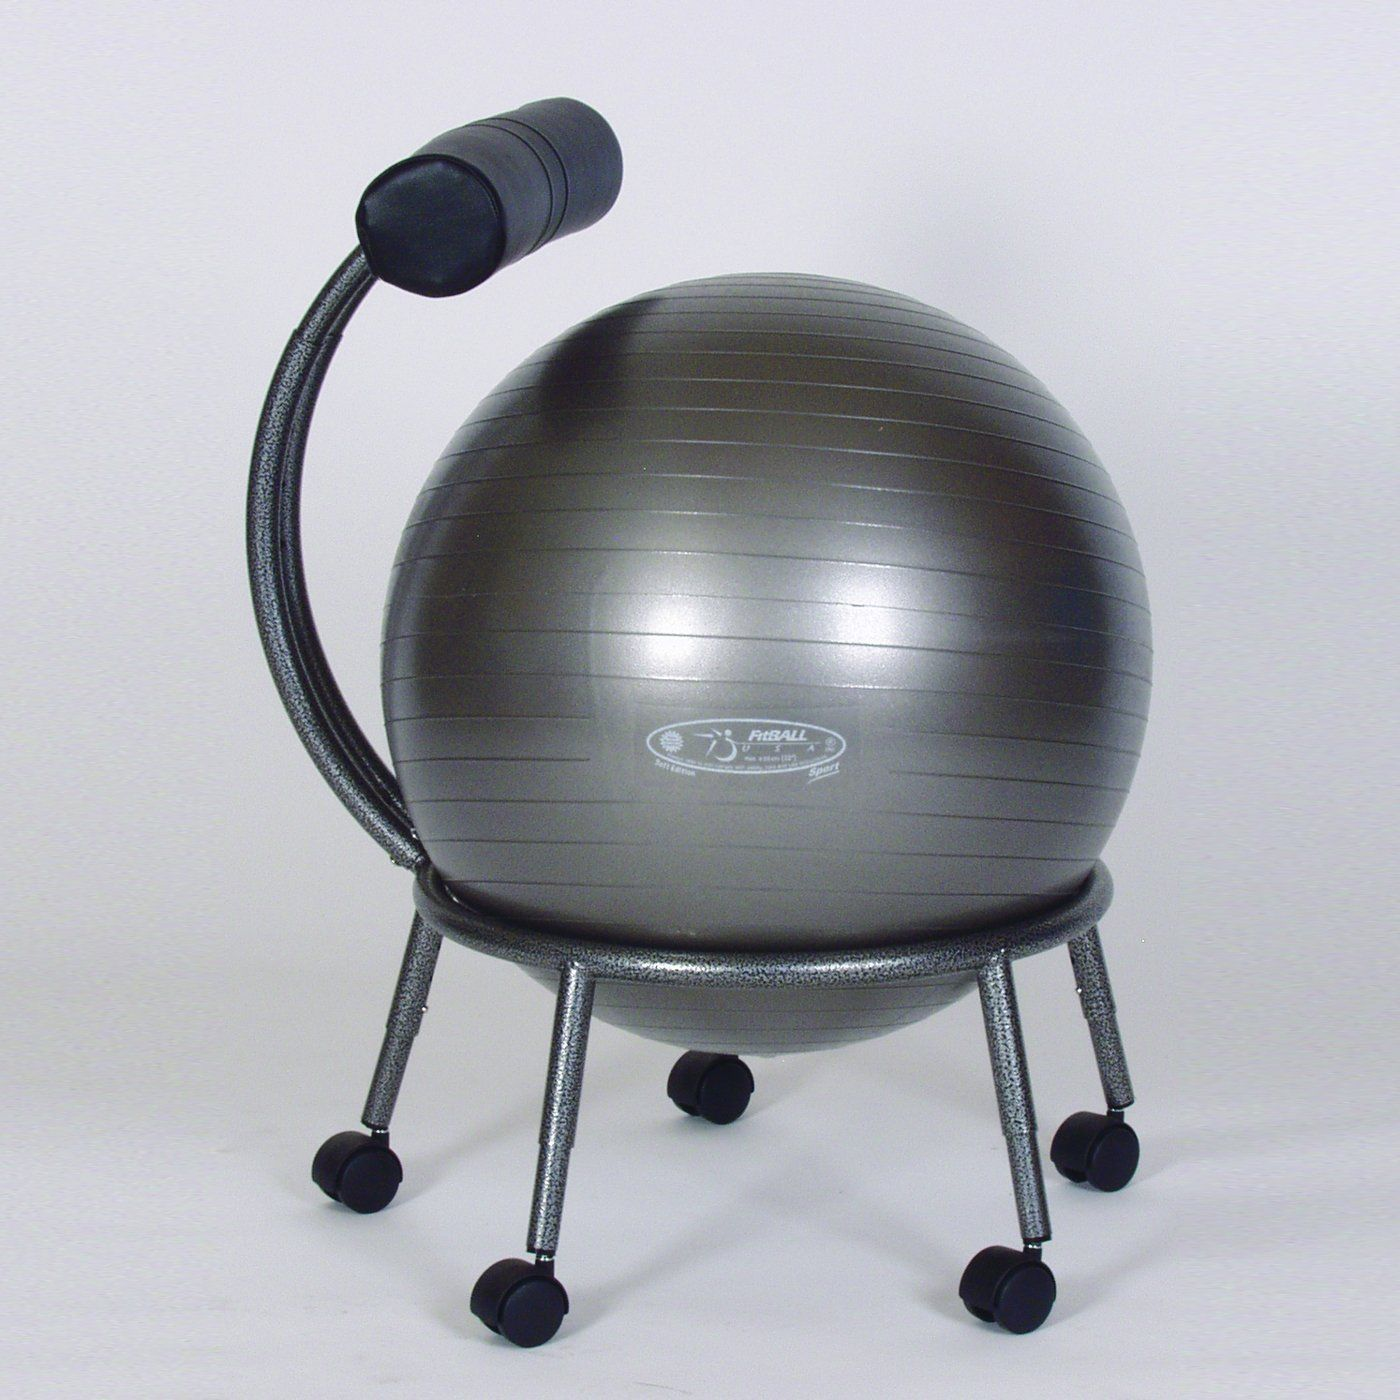 FitBall Stability Ball Chair Balance Ball Chair I want this